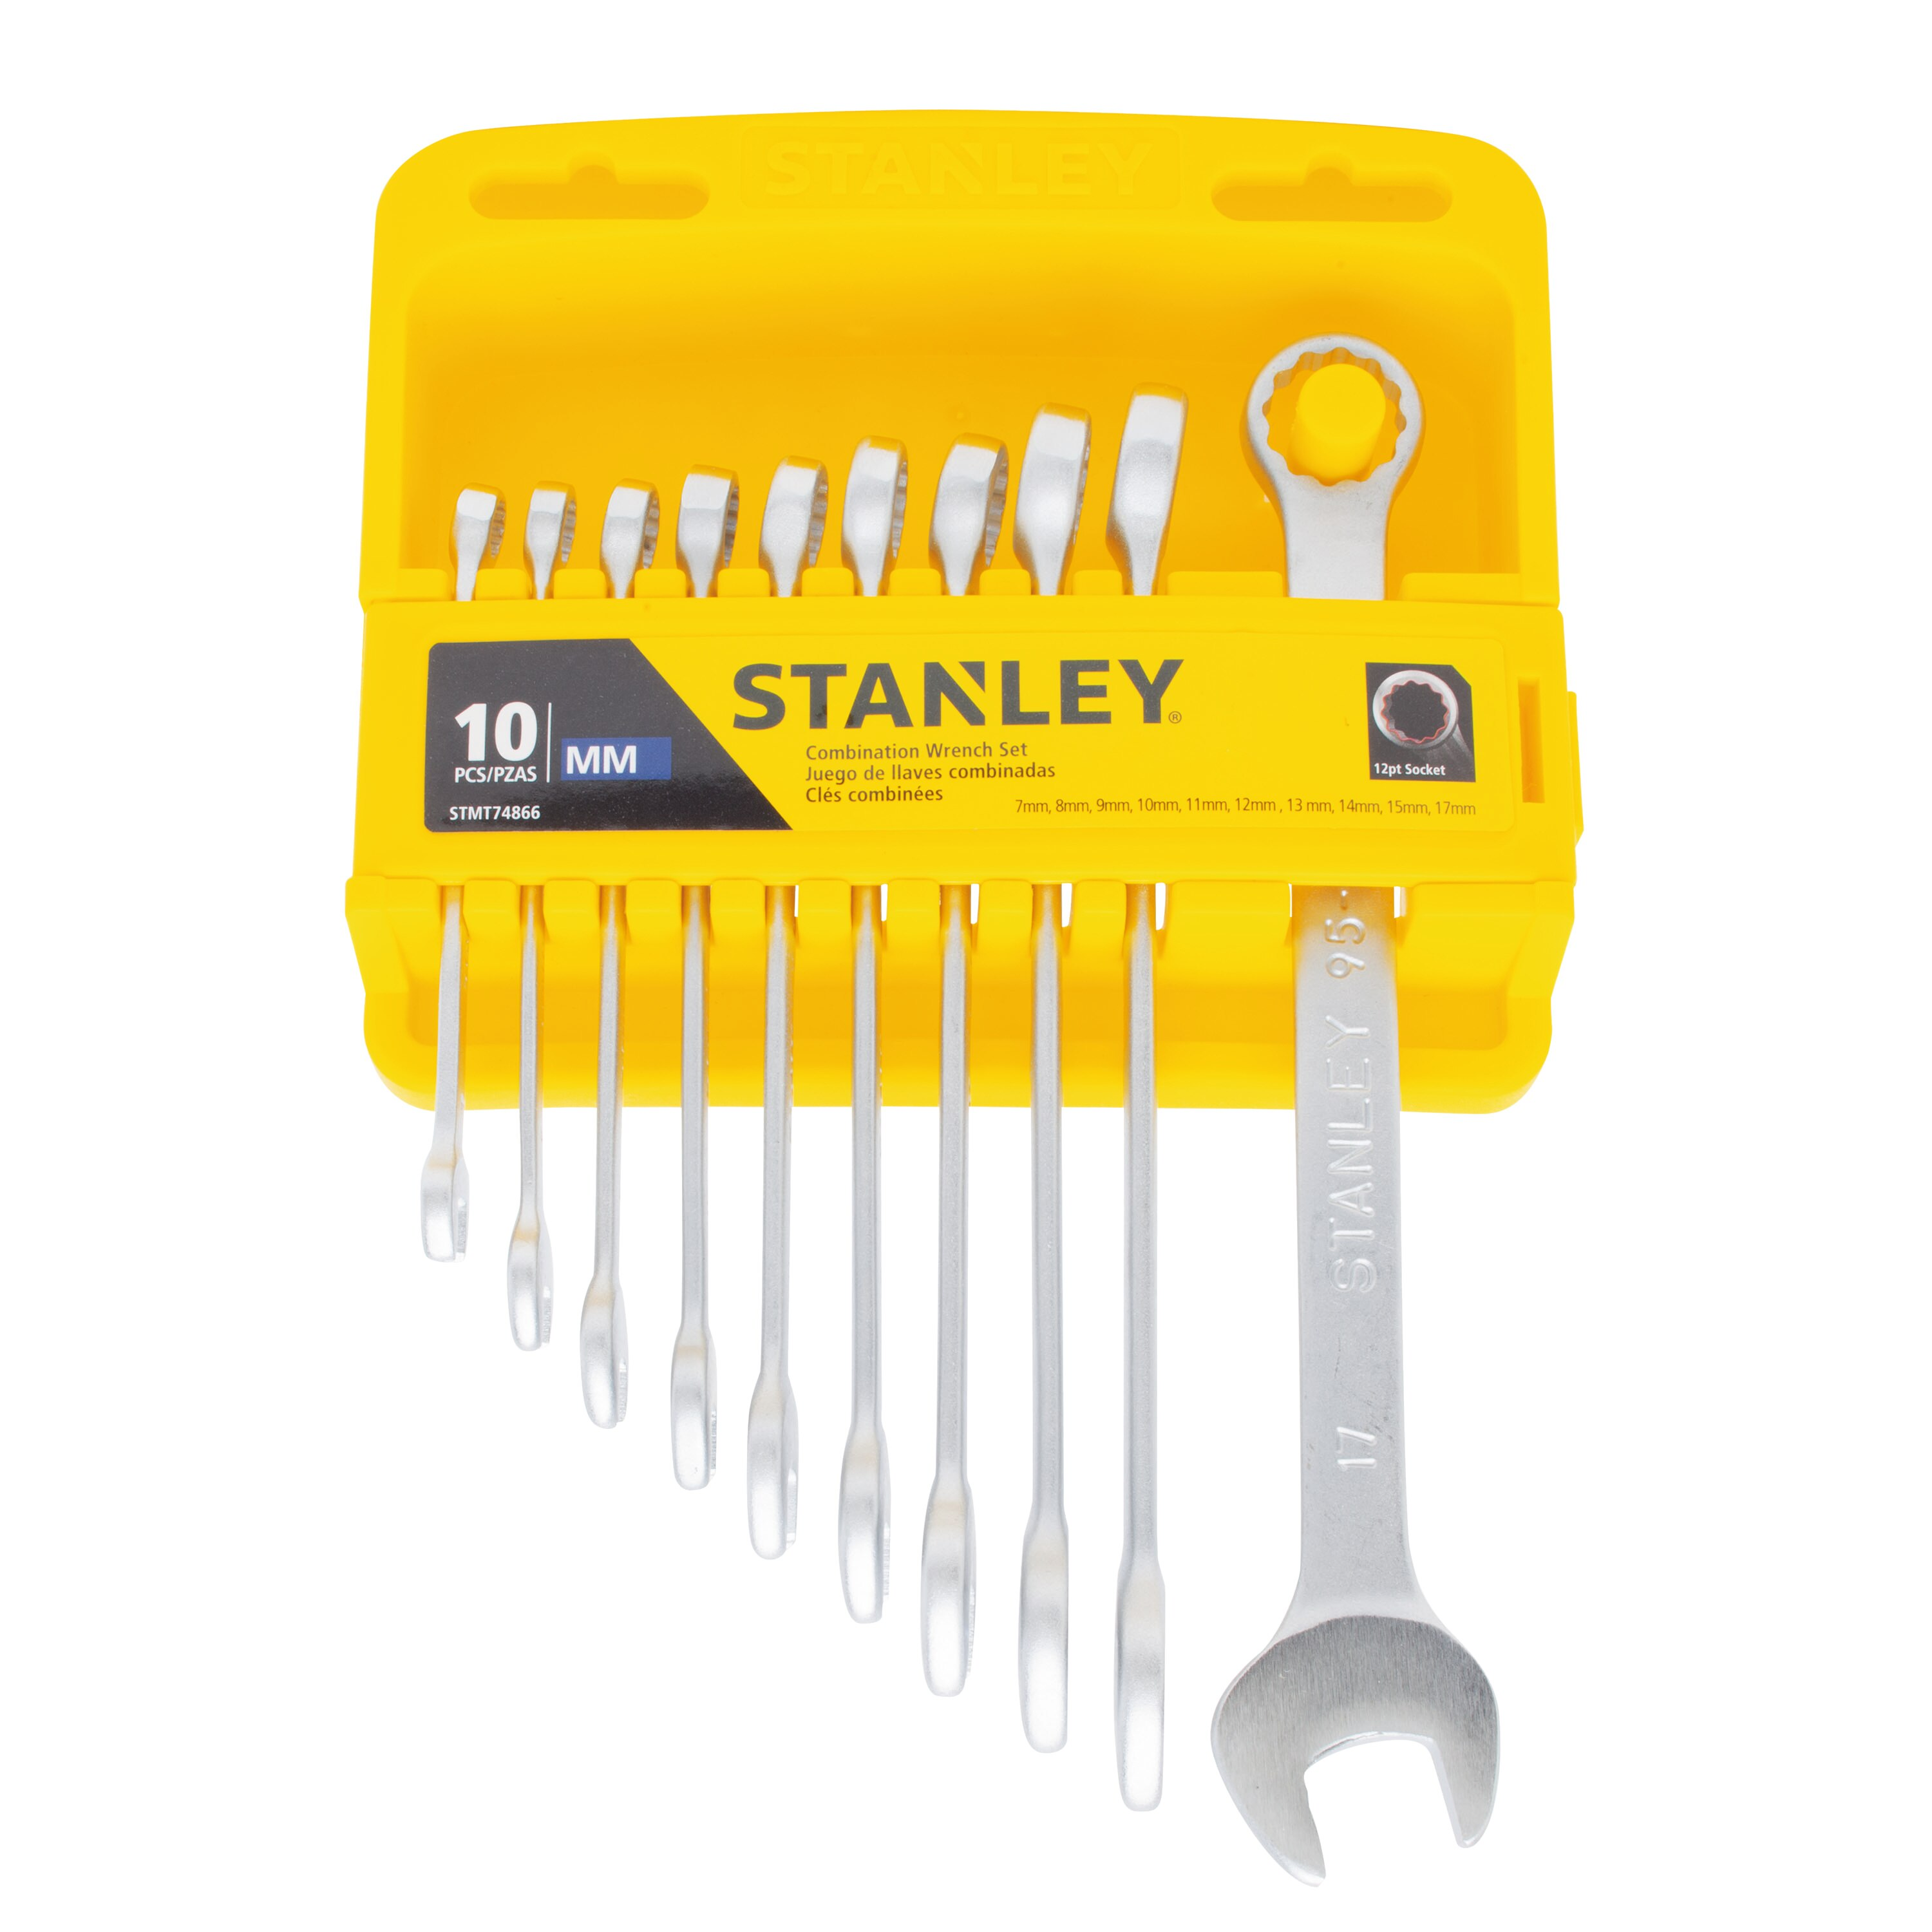 Stanley Tools - 10 pc Metric Combination Wrench Set - STMT74866